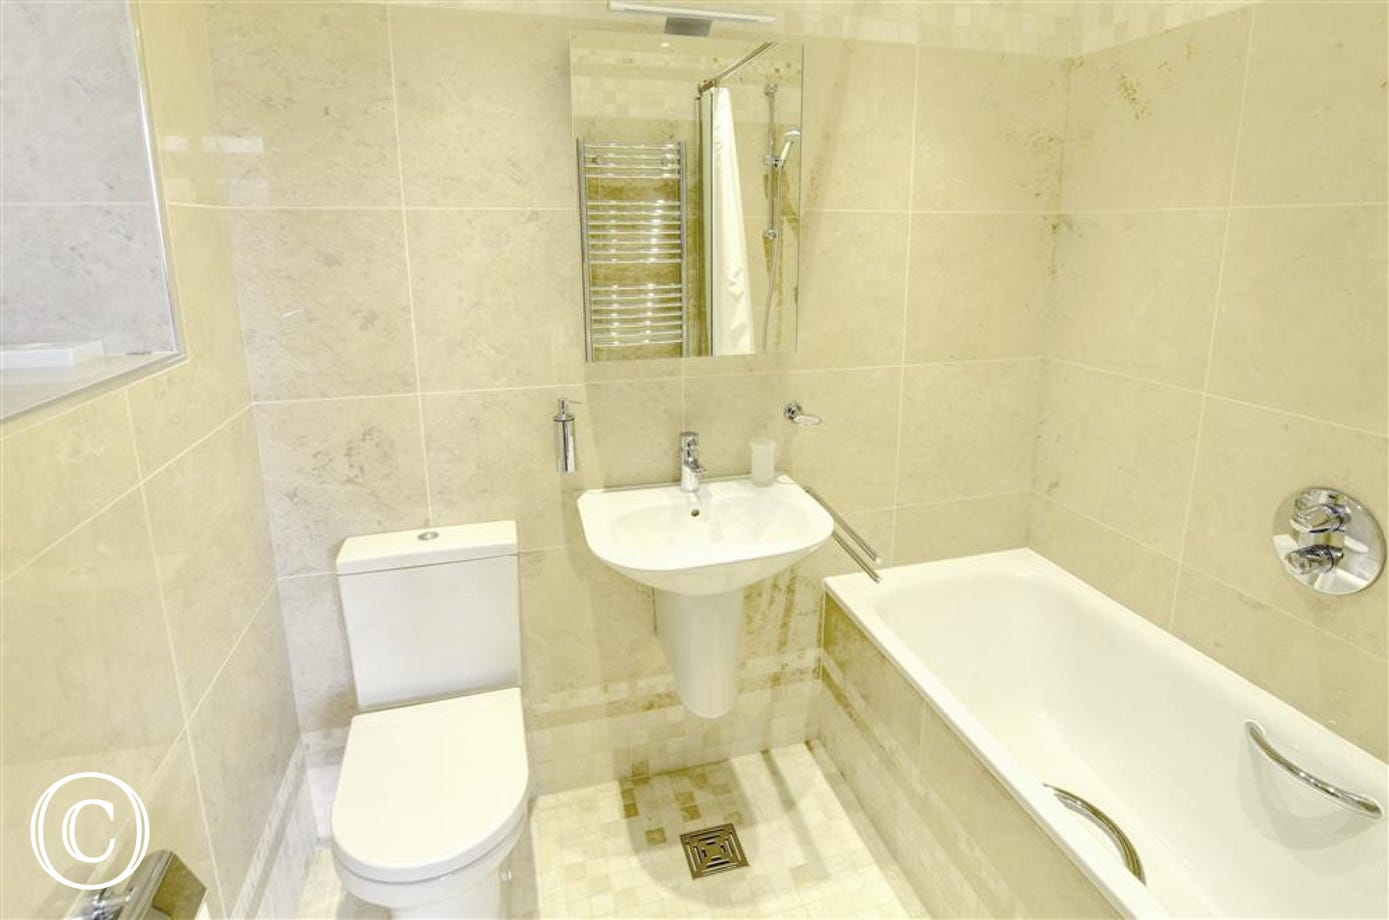 En-suite bathroom with a bath and shower over the bath.